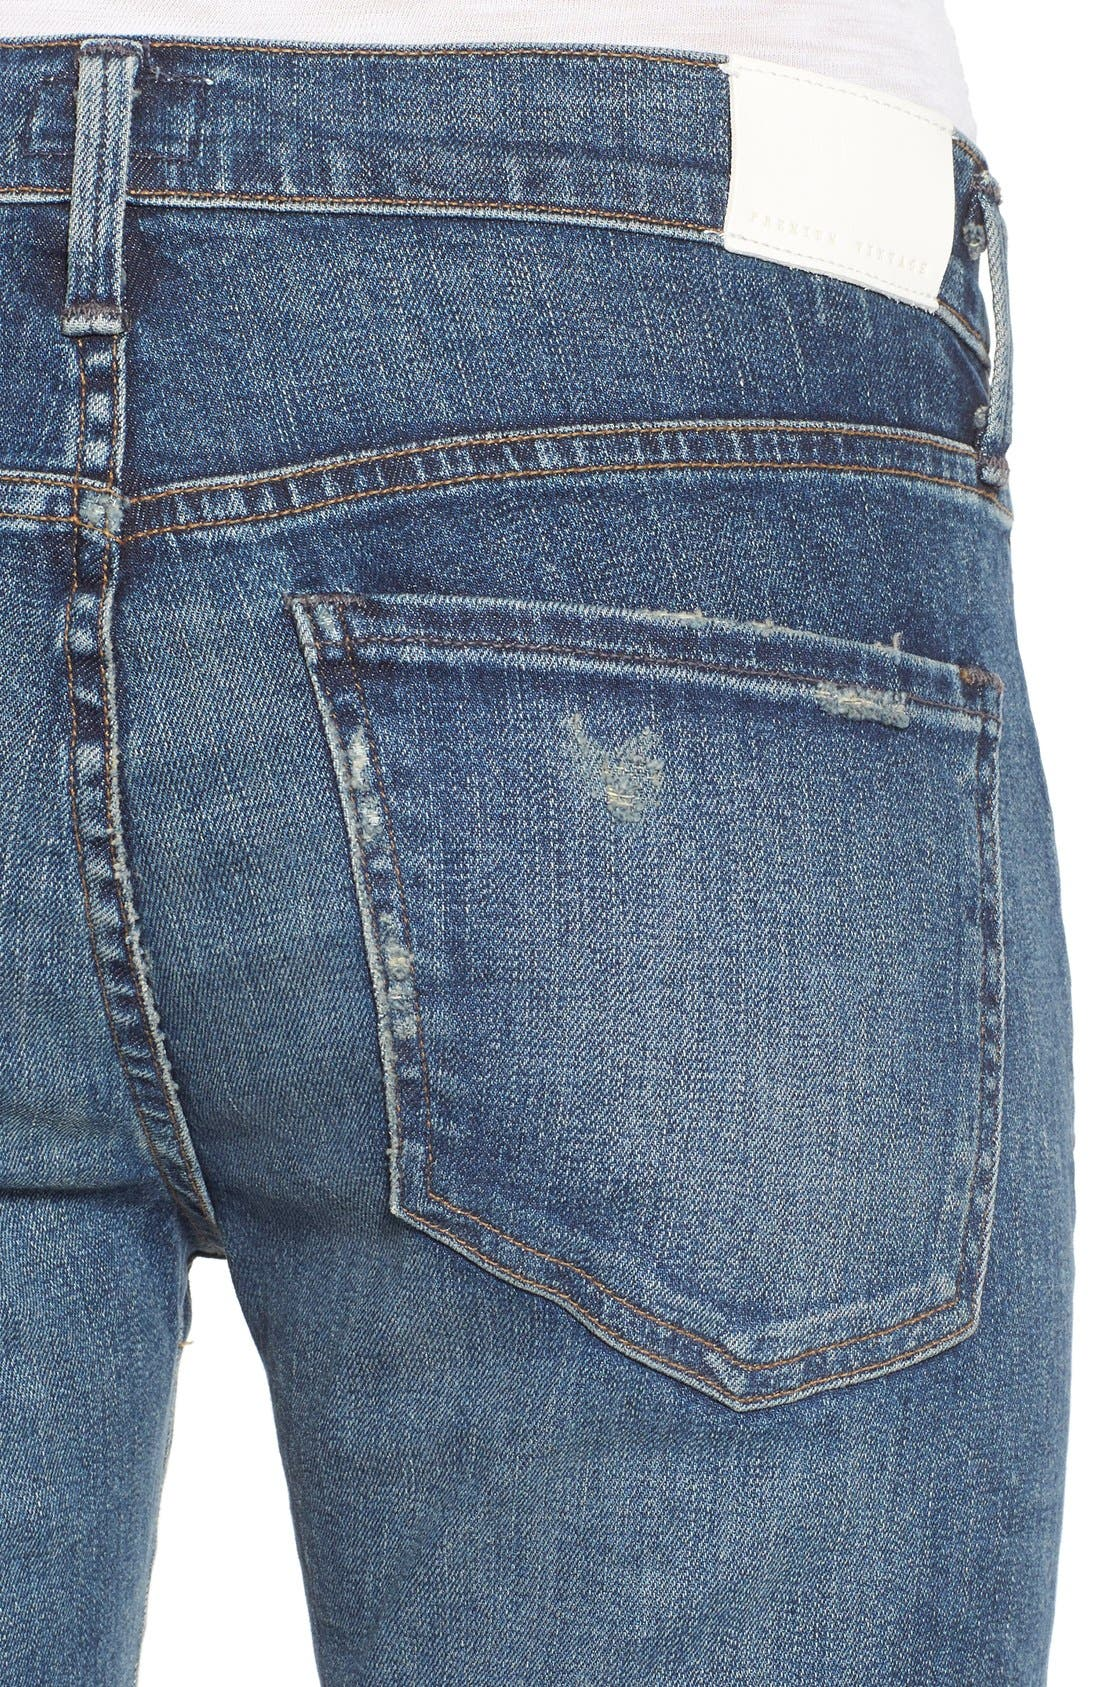 'Elsa' Crop Slim Jeans,                             Alternate thumbnail 4, color,